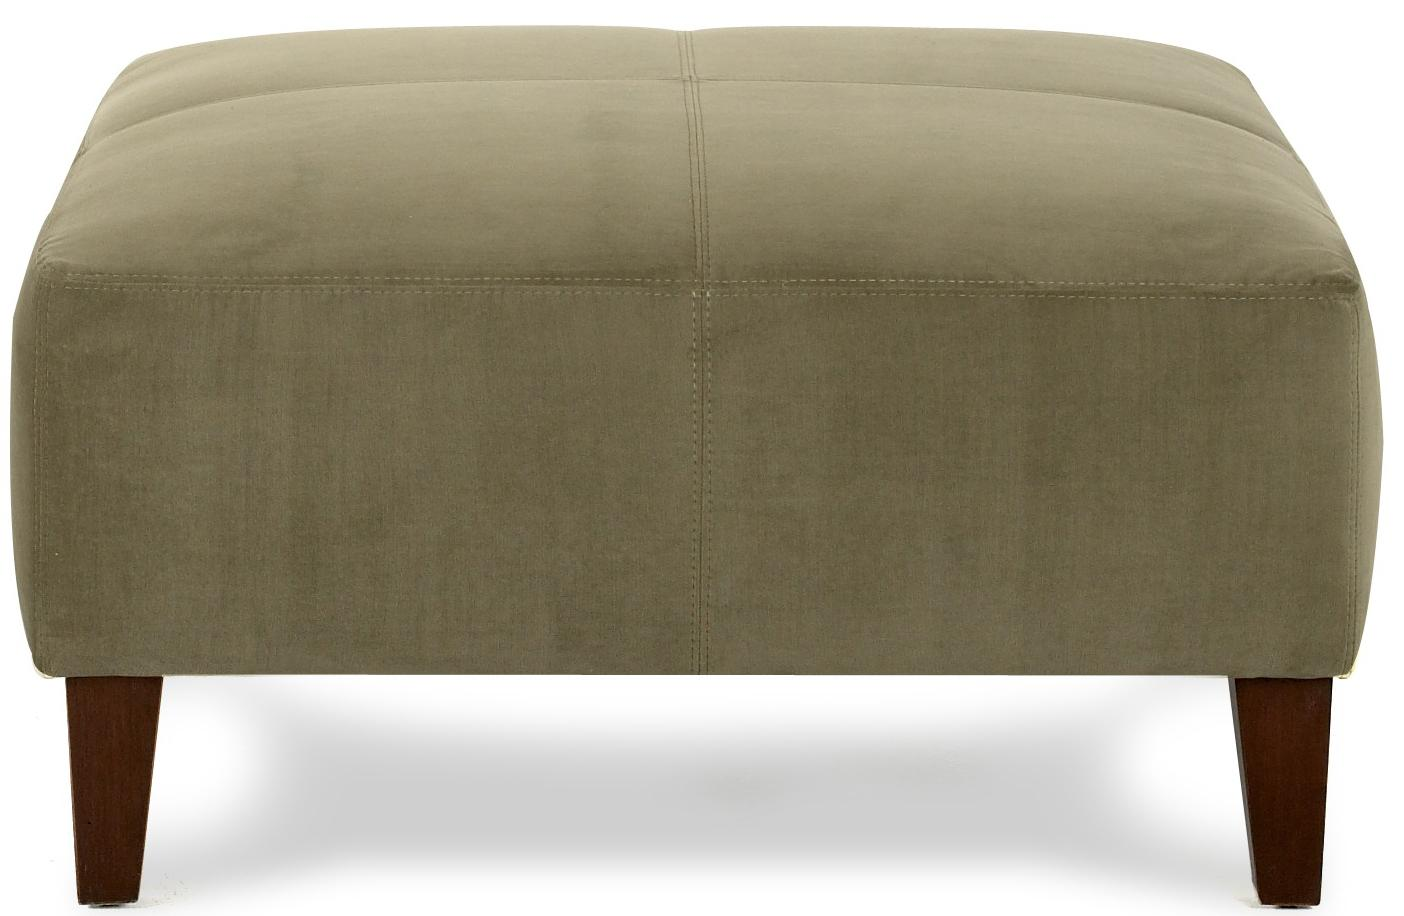 Klaussner Chairs and Accents Ottoman - Item Number: C9900 OTTO